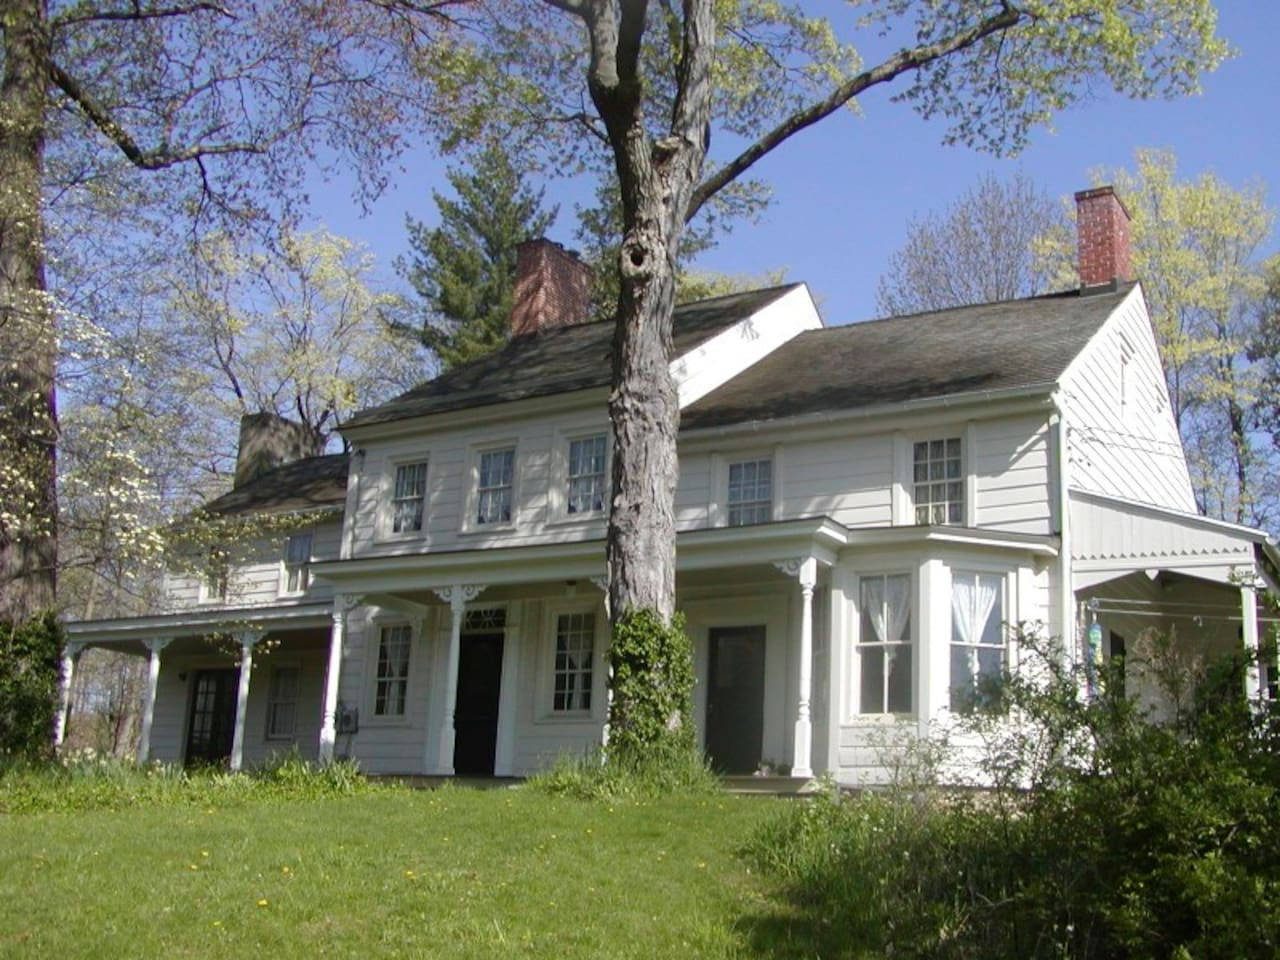 1780s farmhouse in spring time